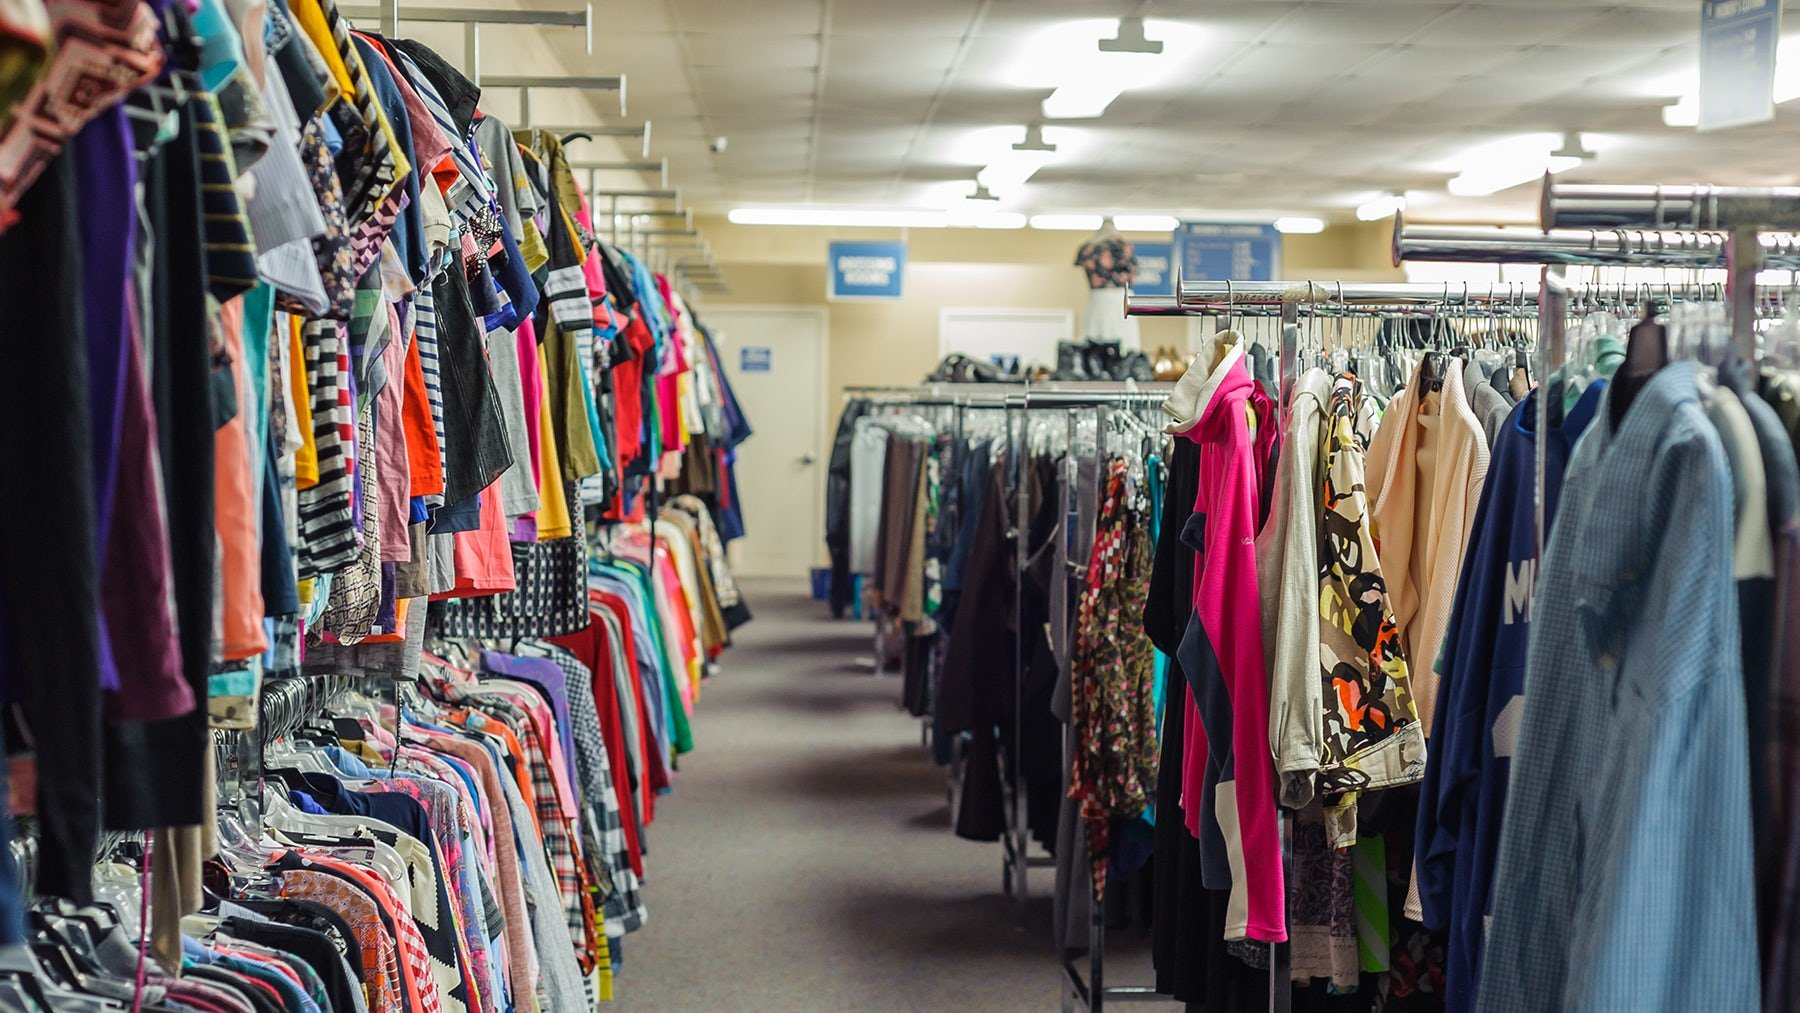 Best 10 Thrift Shops in Singapore - Best In Singapore